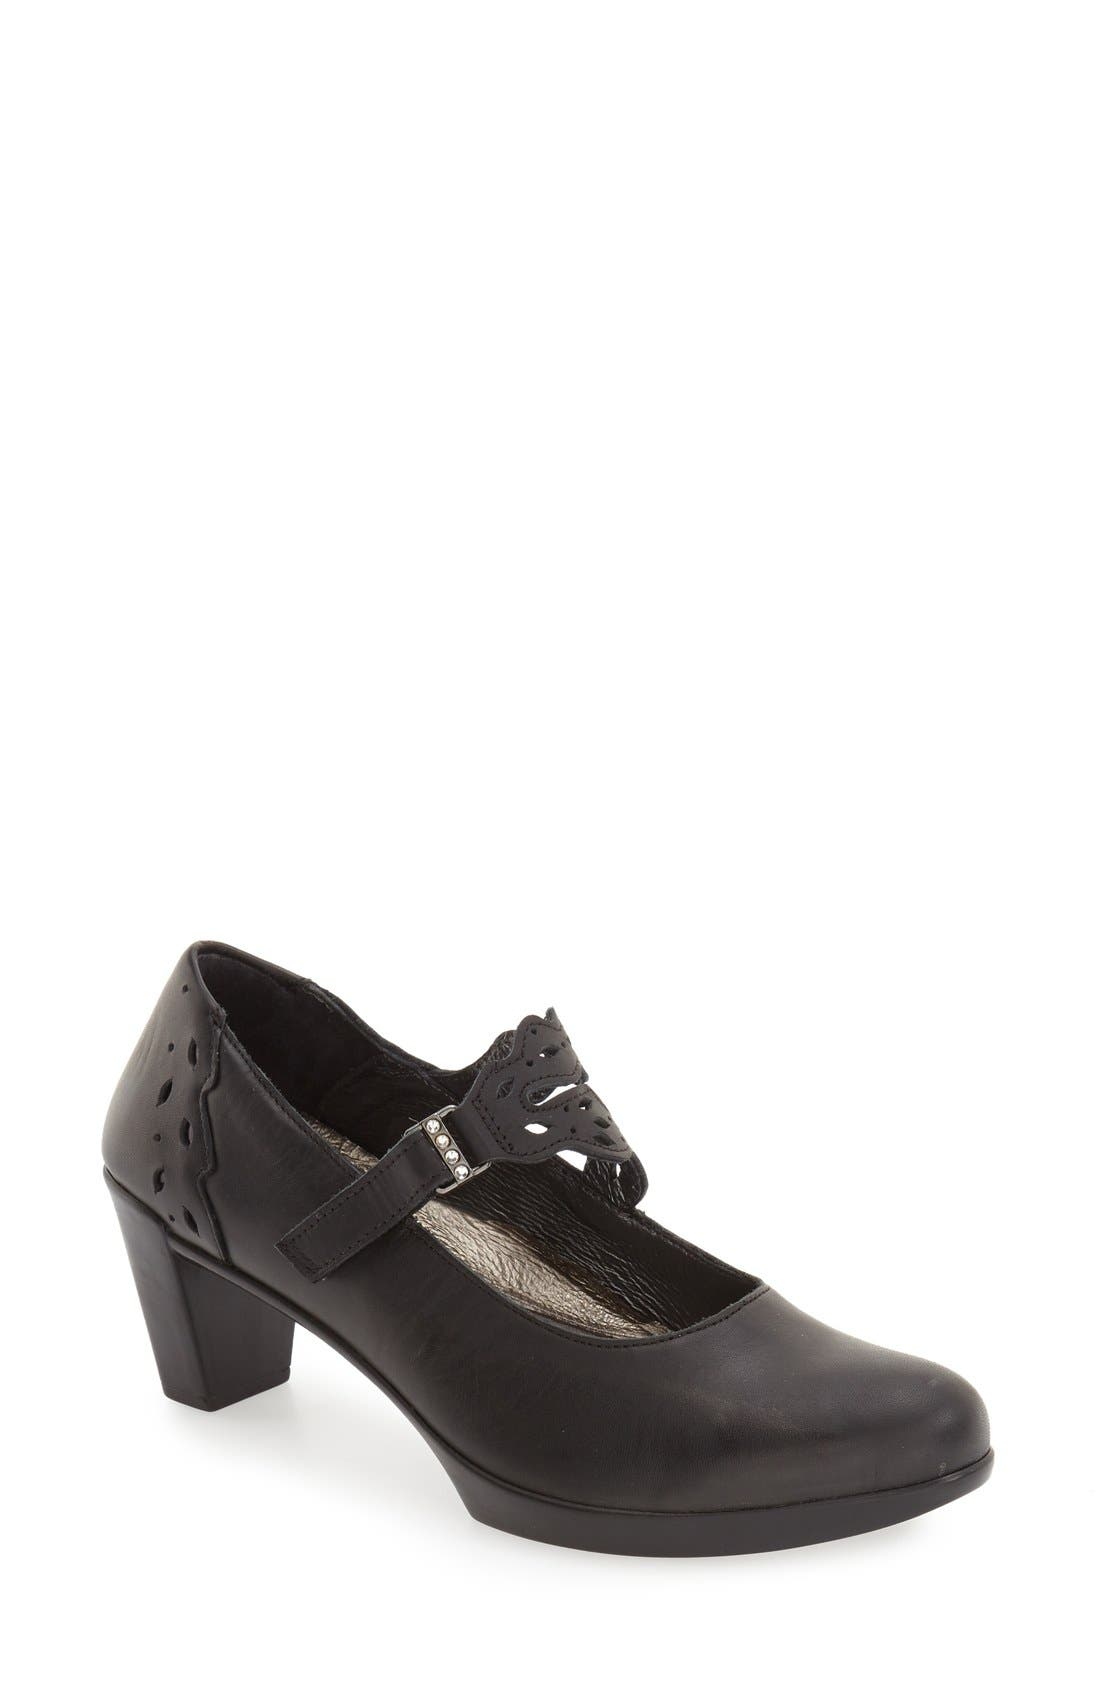 'Amato' Mary Jane Pump,                         Main,                         color, 017